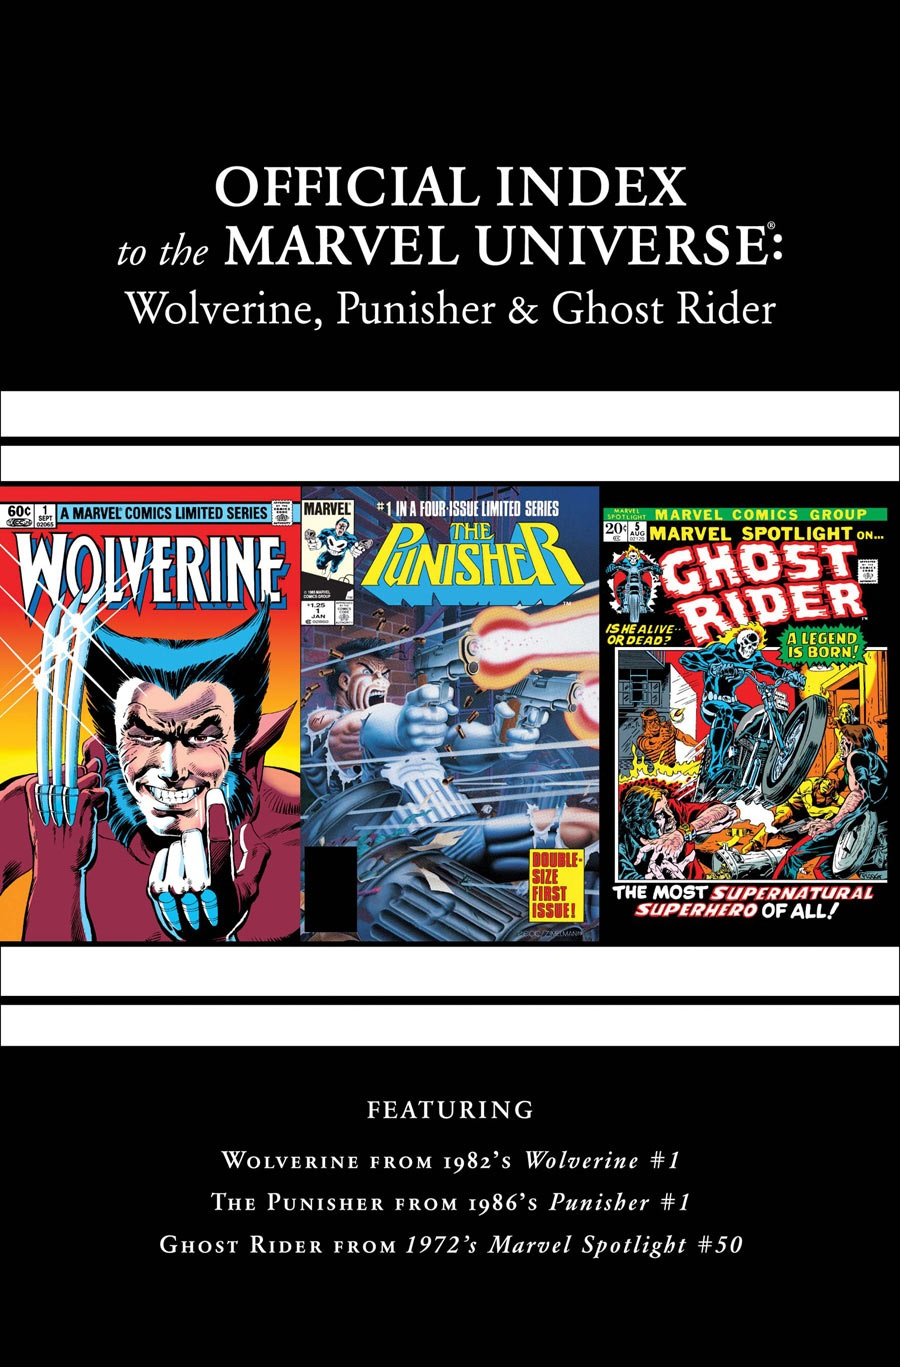 Wolverine, Punisher & Ghost Rider: Official Index to the Marvel Universe Vol 1